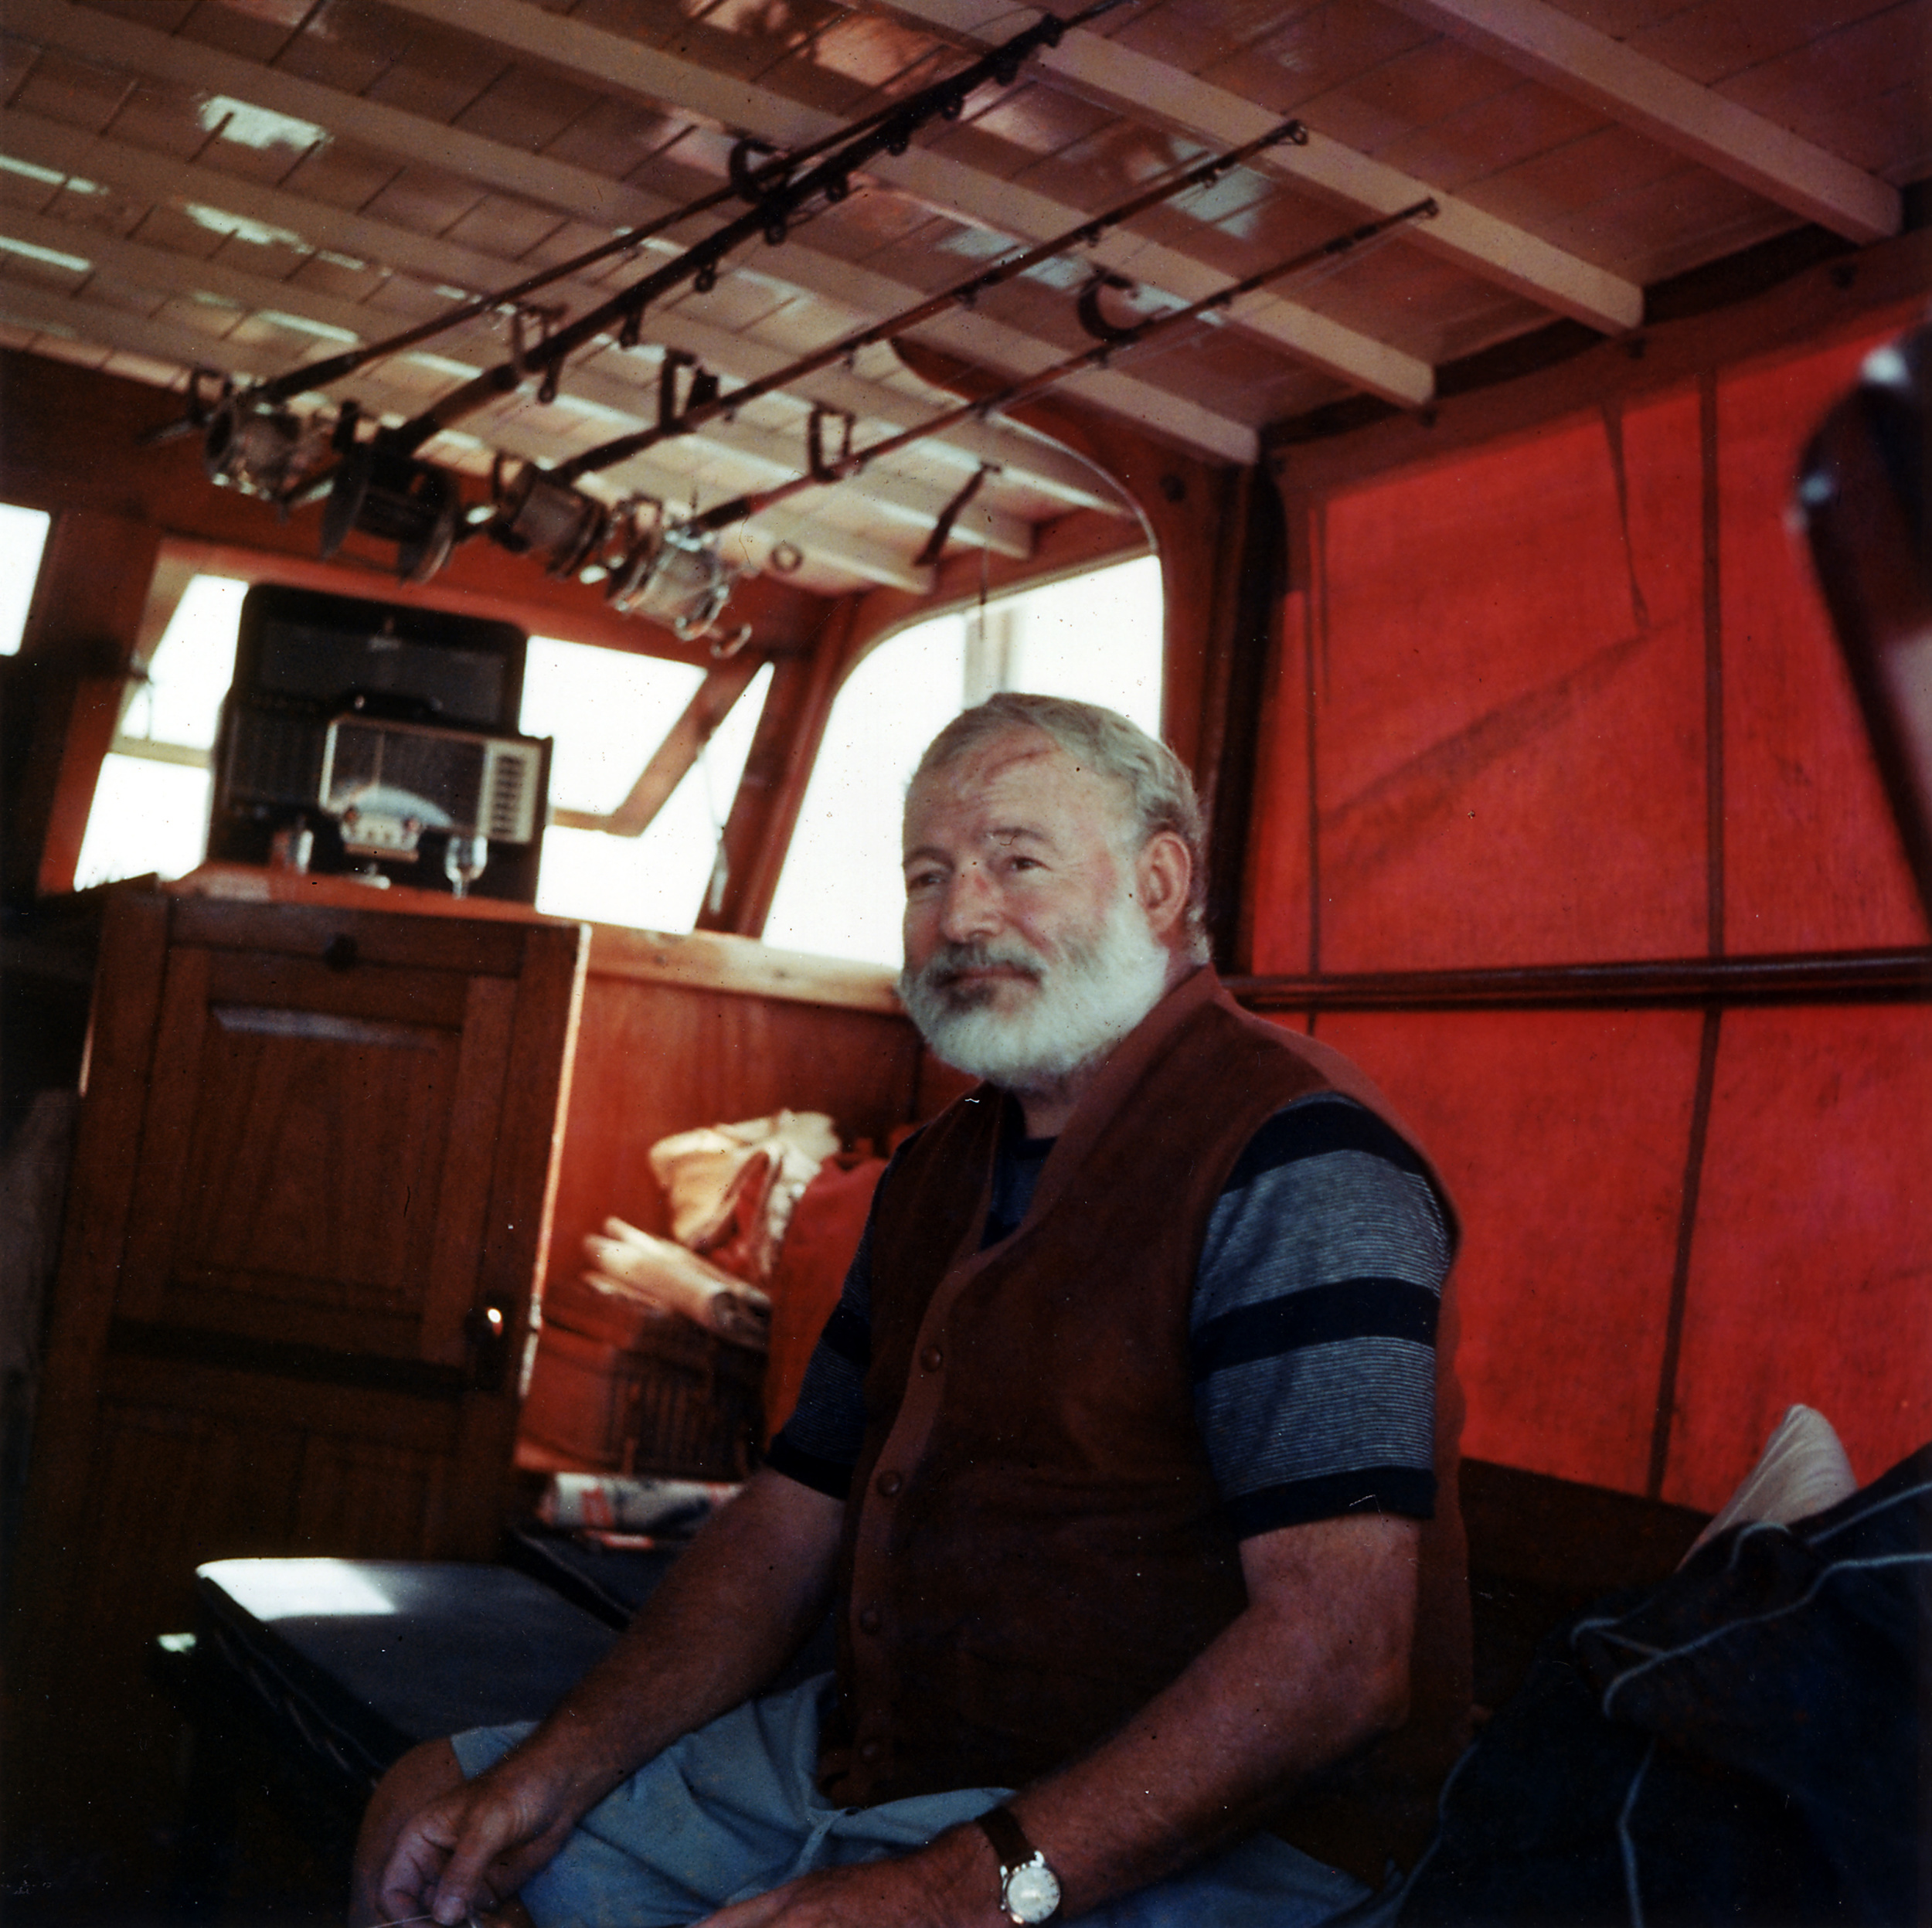 Ernest Hemingway in the cabin of his boat  Pilar , off the coast of Cuba, 1950. Credit: Wikipedia.org.